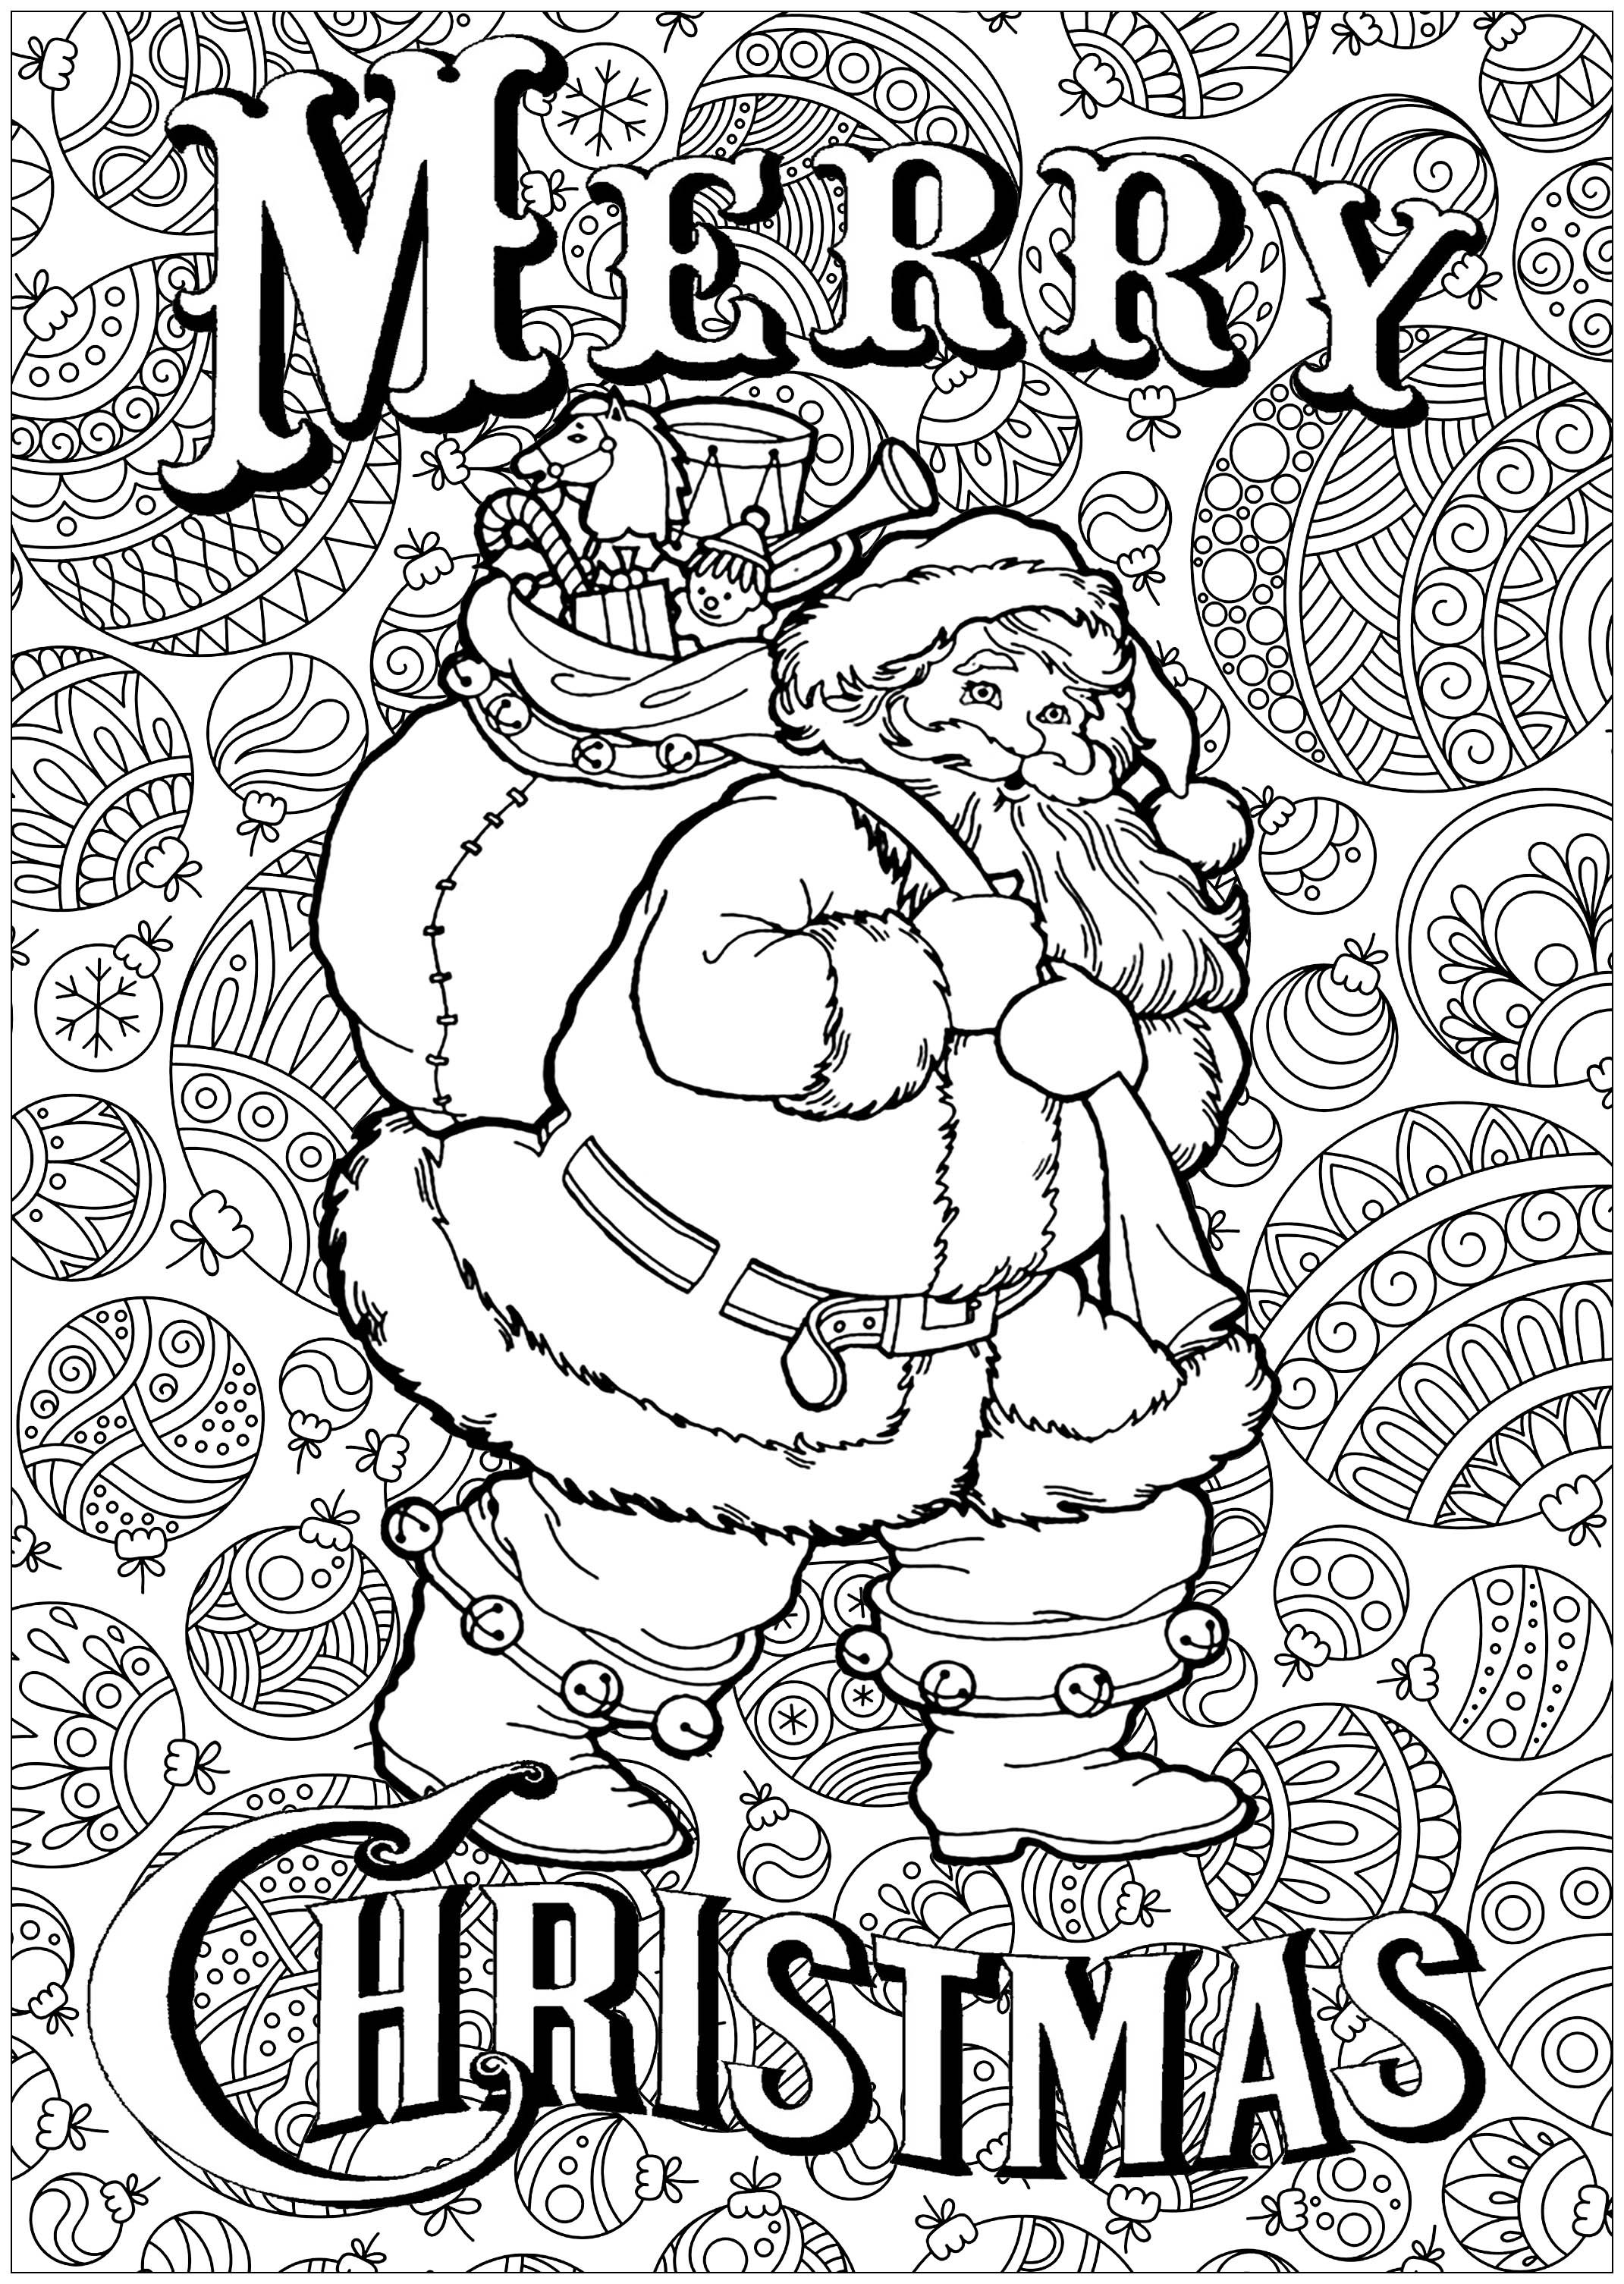 coloring santa claus with text and background - Christmas Coloring Pages For Adults